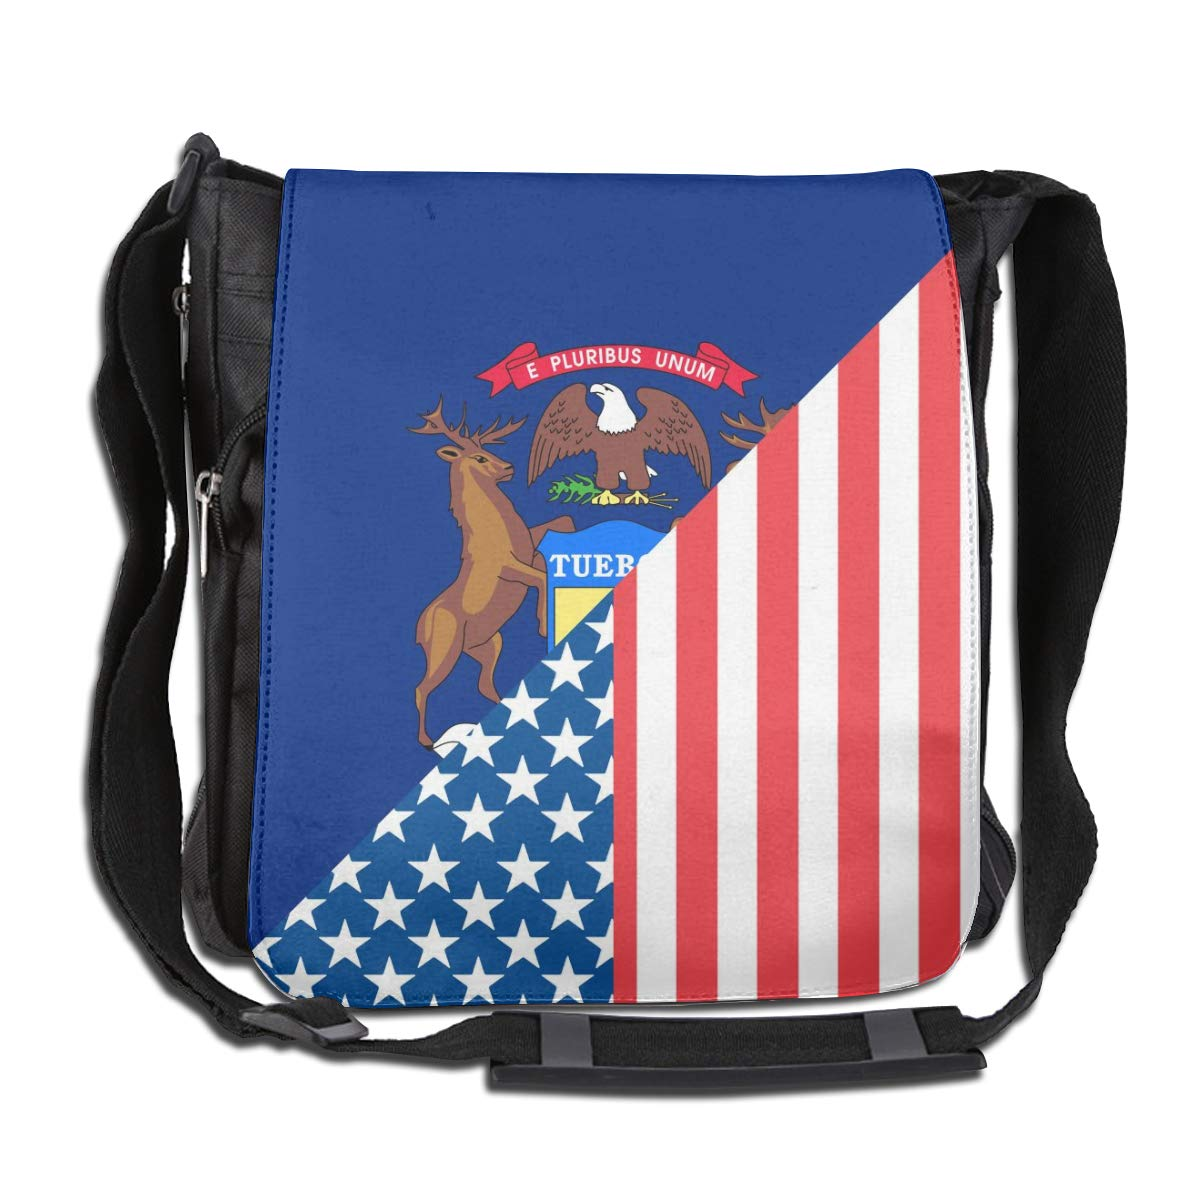 American And Michigan State Flag Crossbody Shoulder Bag Novelty Casual Daily Messenger Bag Satchel School Bag For Women And Men